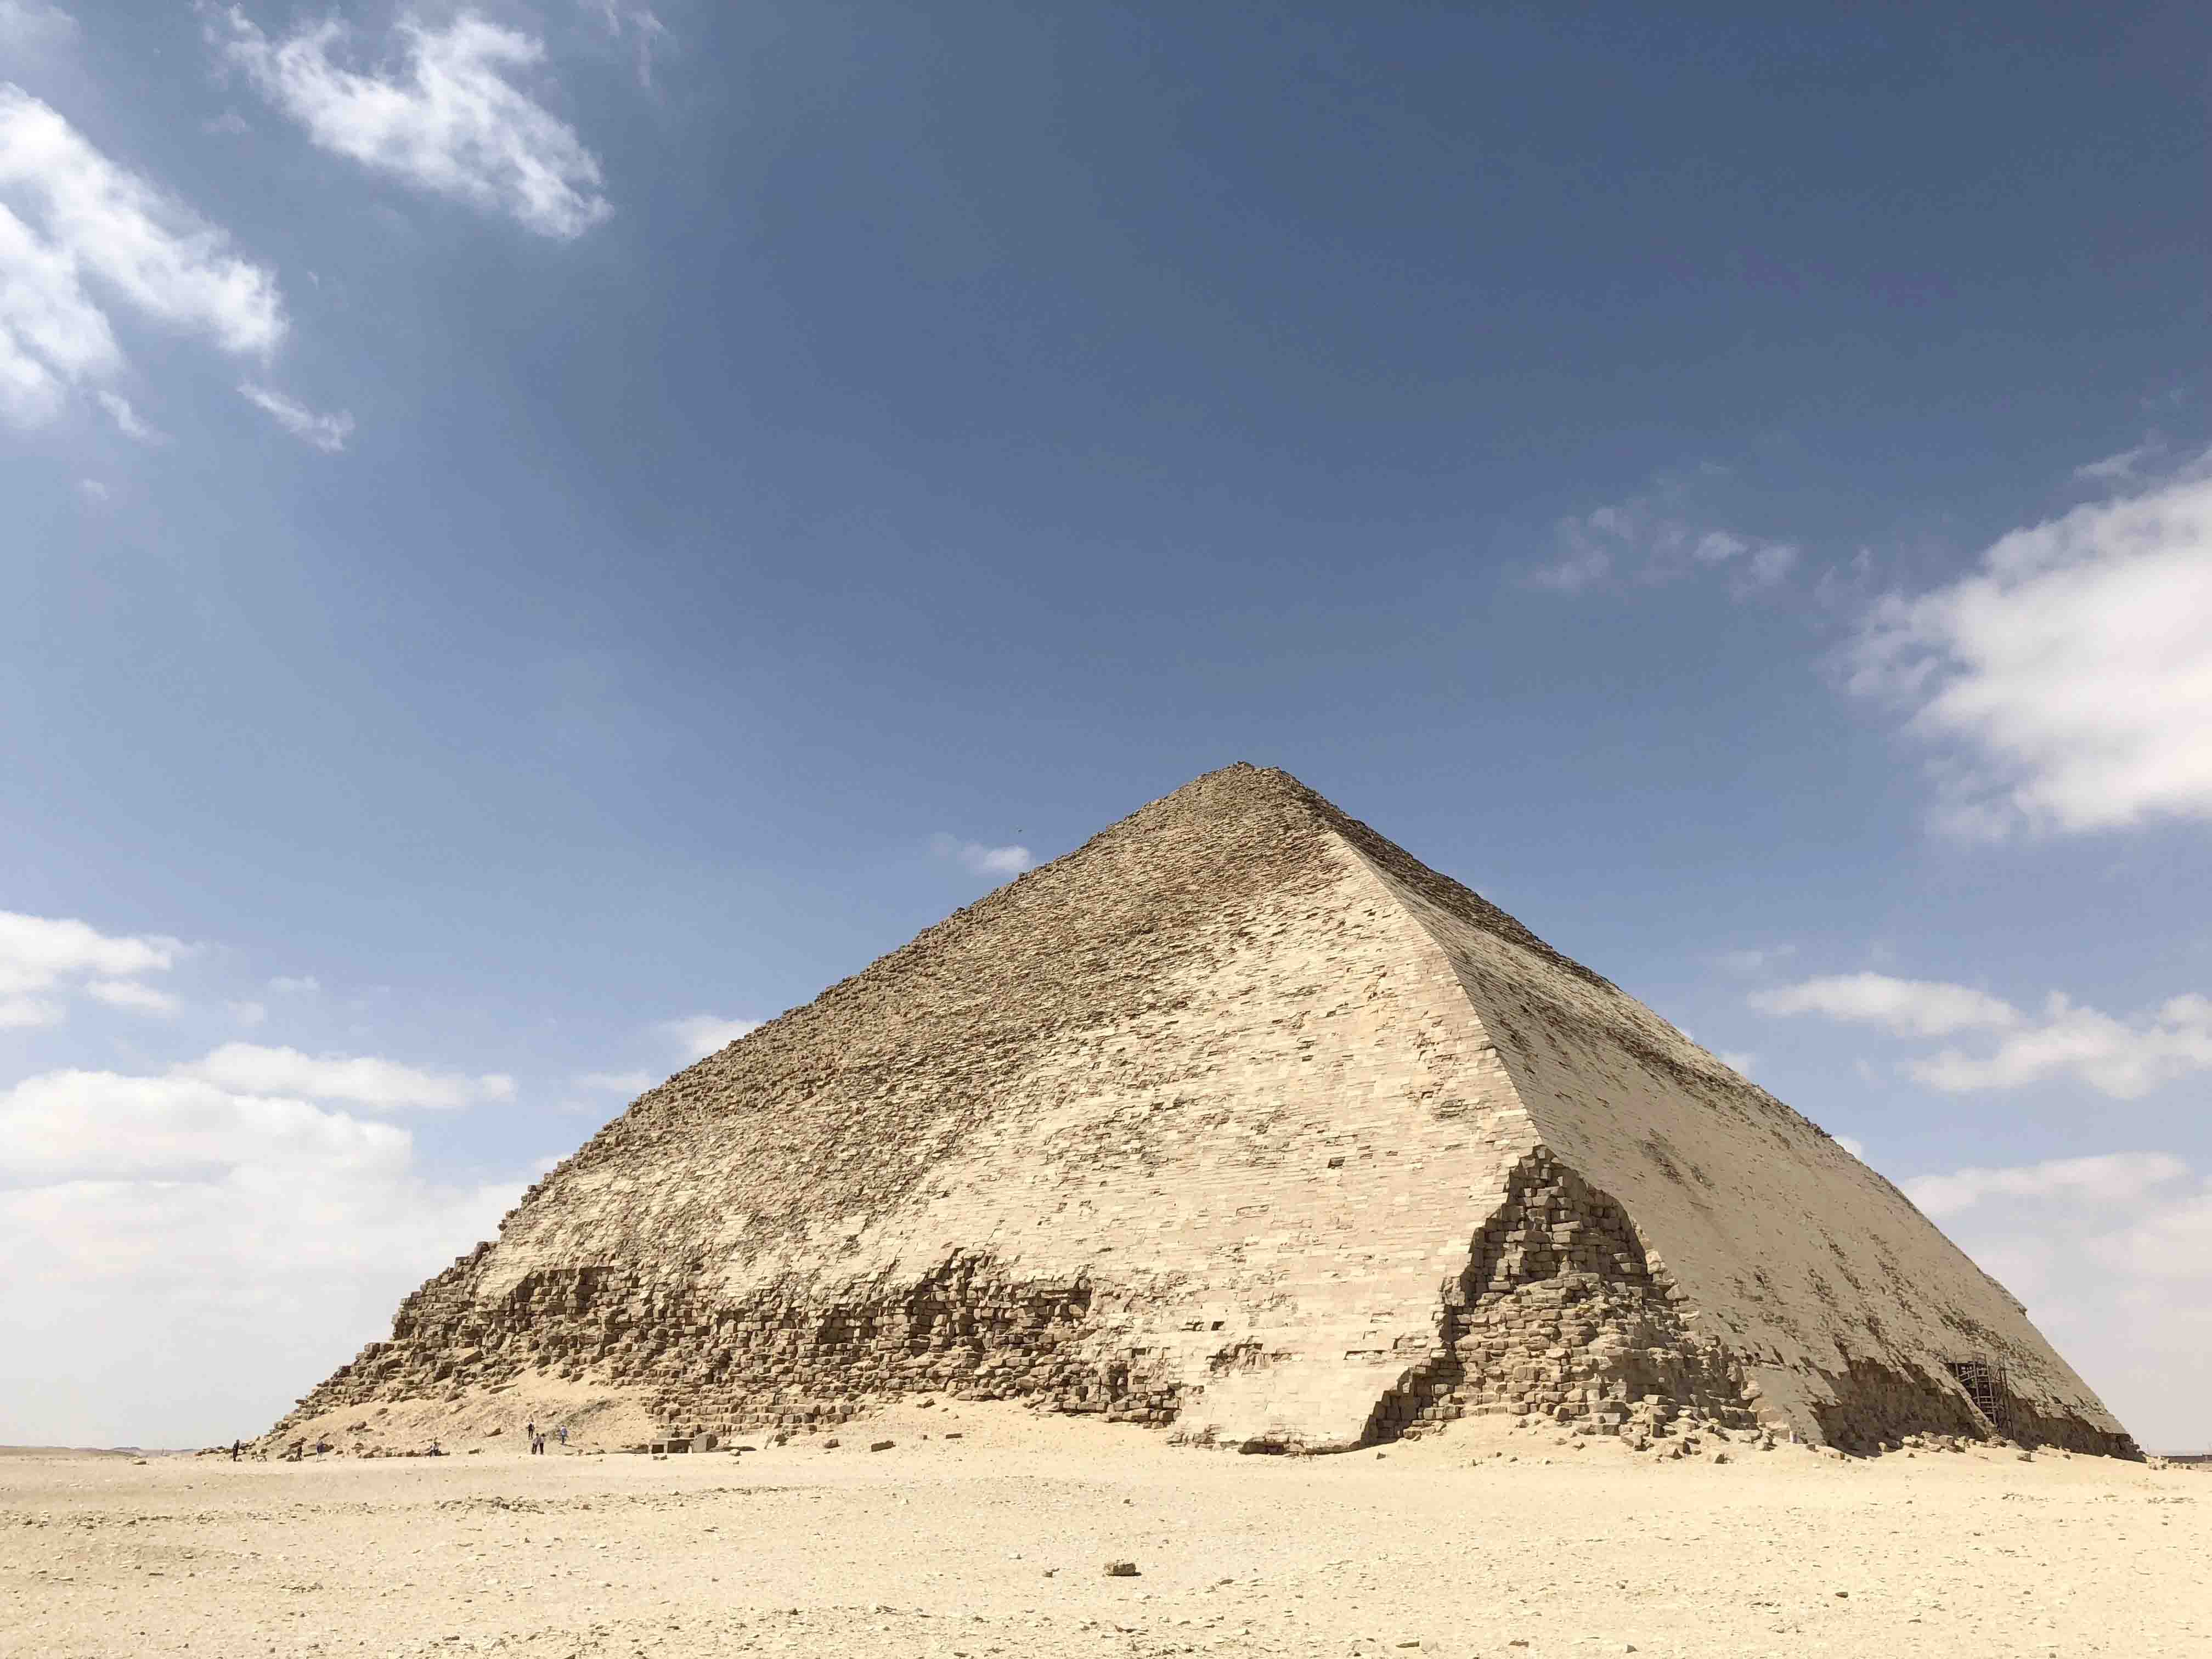 The Bent Pyramid marked a turning point from the step-sided pyramids to the smooth-sided ones. (Joan Carles Tarda)